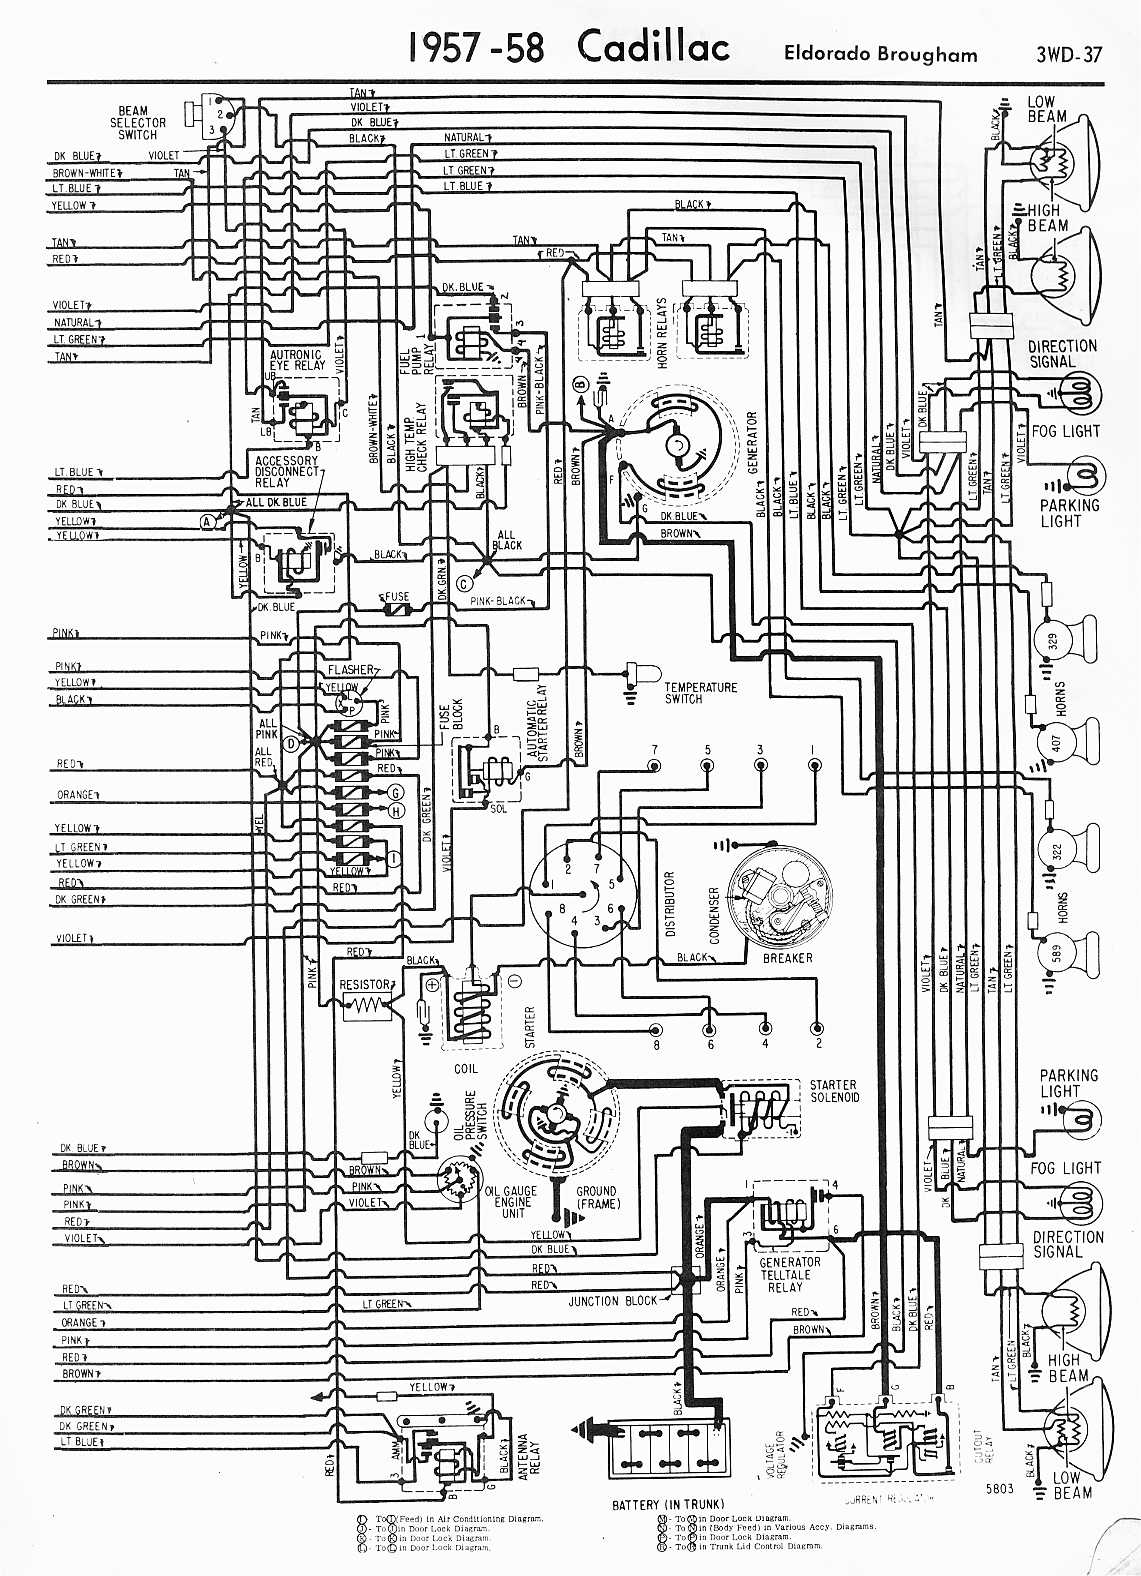 MWireCadi65_3WD 037 68 cadillac wiring harness 1969 cadillac \u2022 free wiring diagrams 1999 cadillac deville engine wiring harness at eliteediting.co